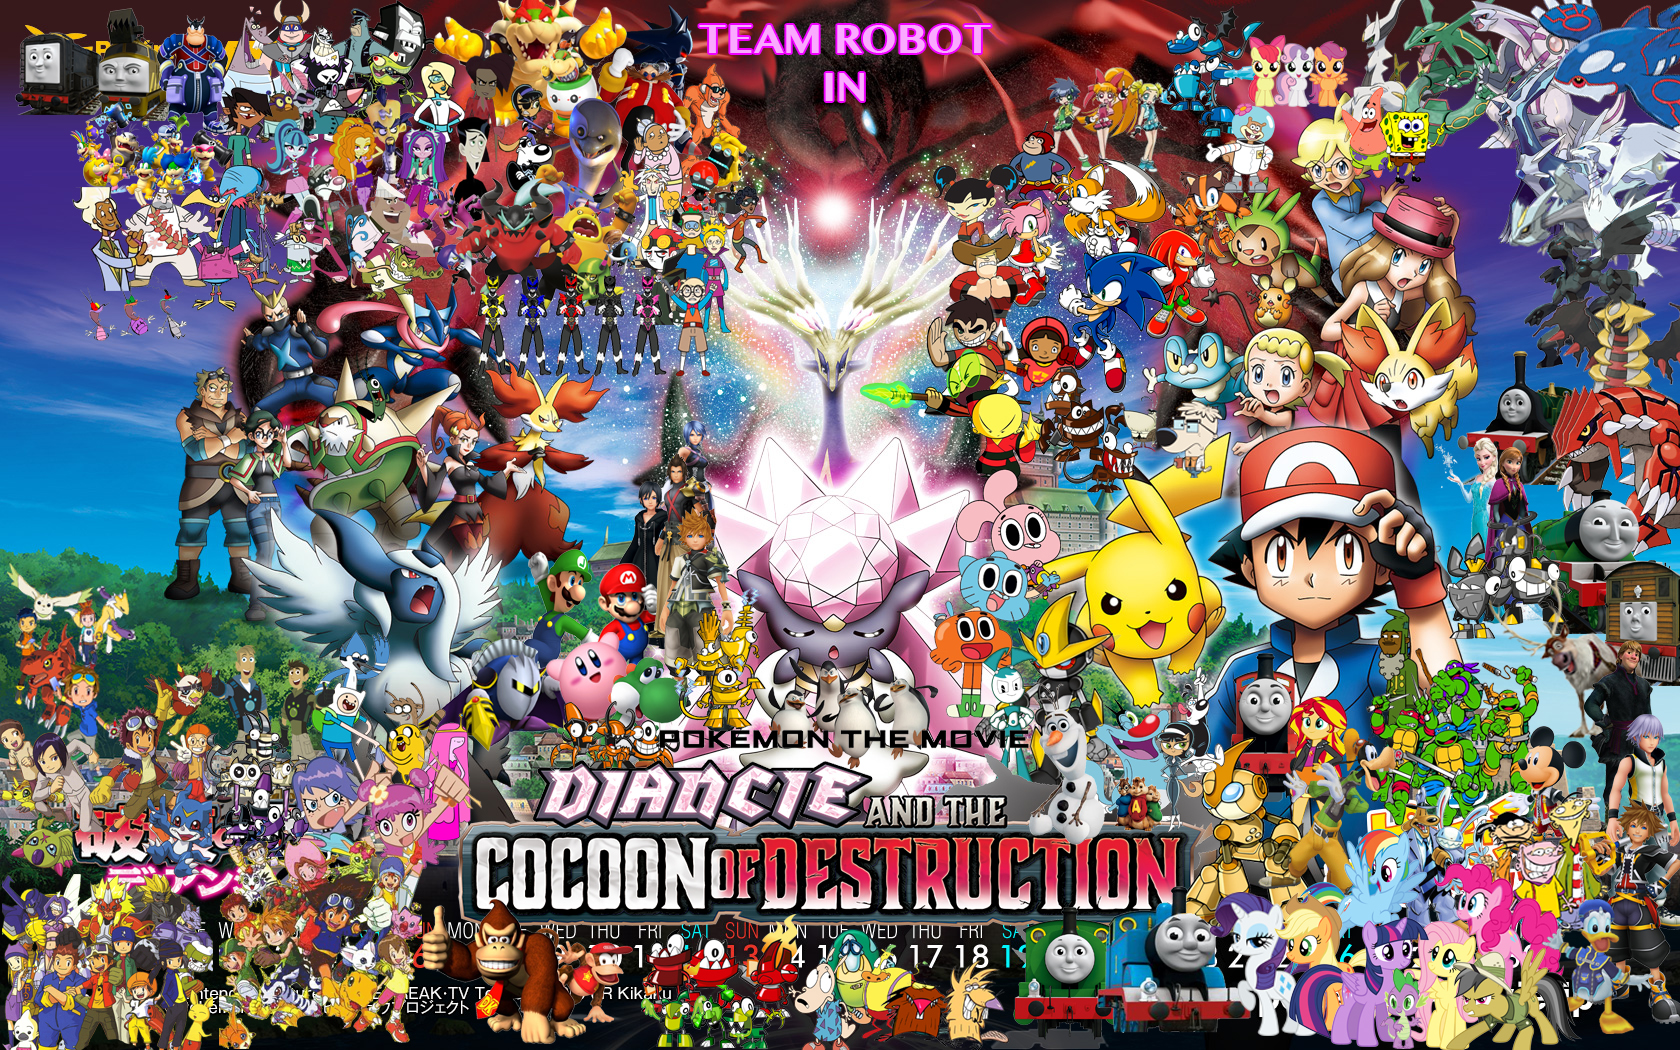 Team Robot In Pokemon Diancie The Cocoon Of Destruction